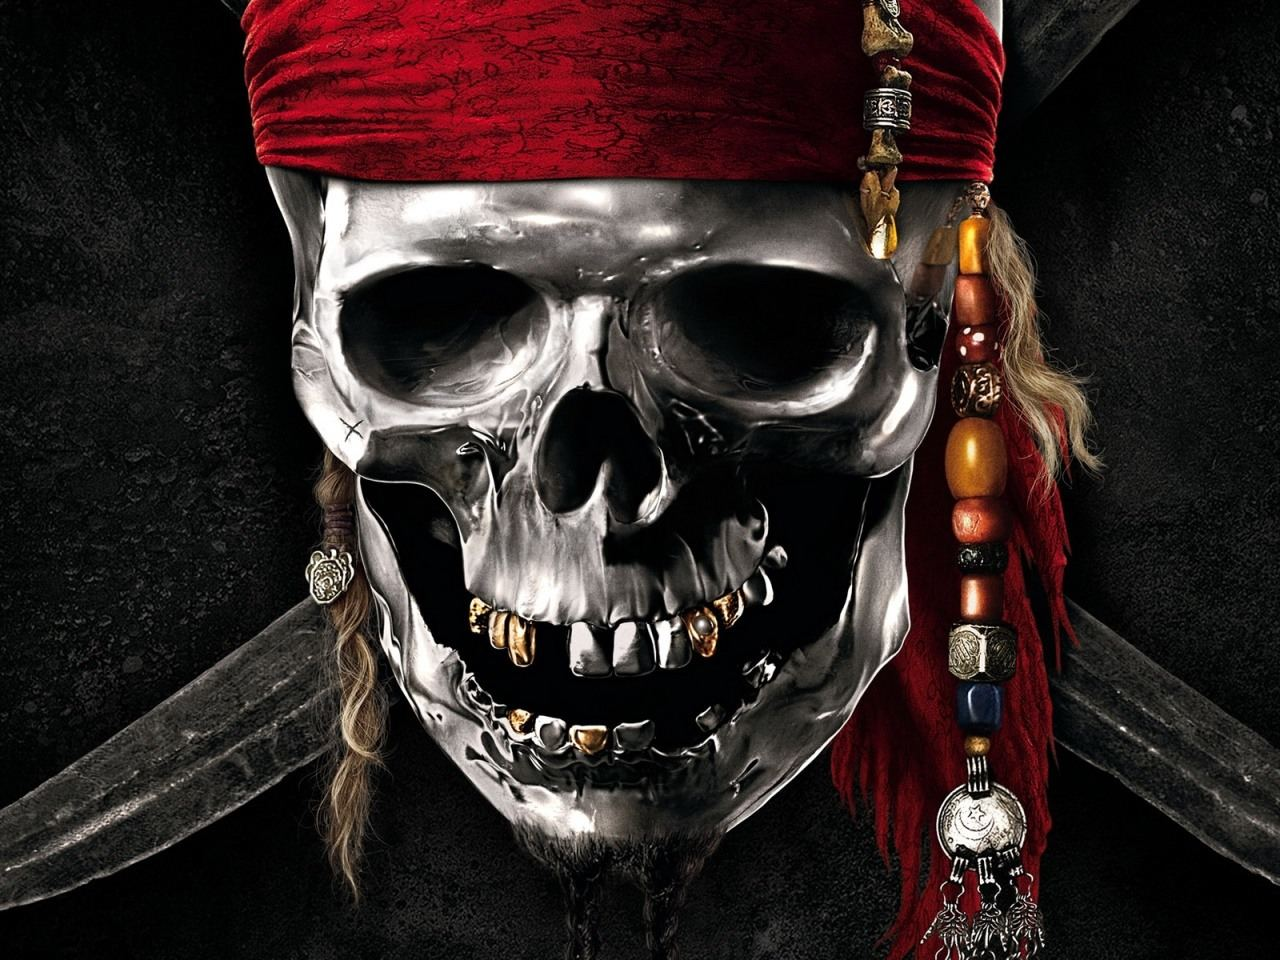 http://2.bp.blogspot.com/-83hmBkomivg/TV1GX02kXVI/AAAAAAAAA0M/DQssr8R_KIk/s1600/Pirates-of-the-Caribbean-4-On-Stranger-Tides-2110.jpg